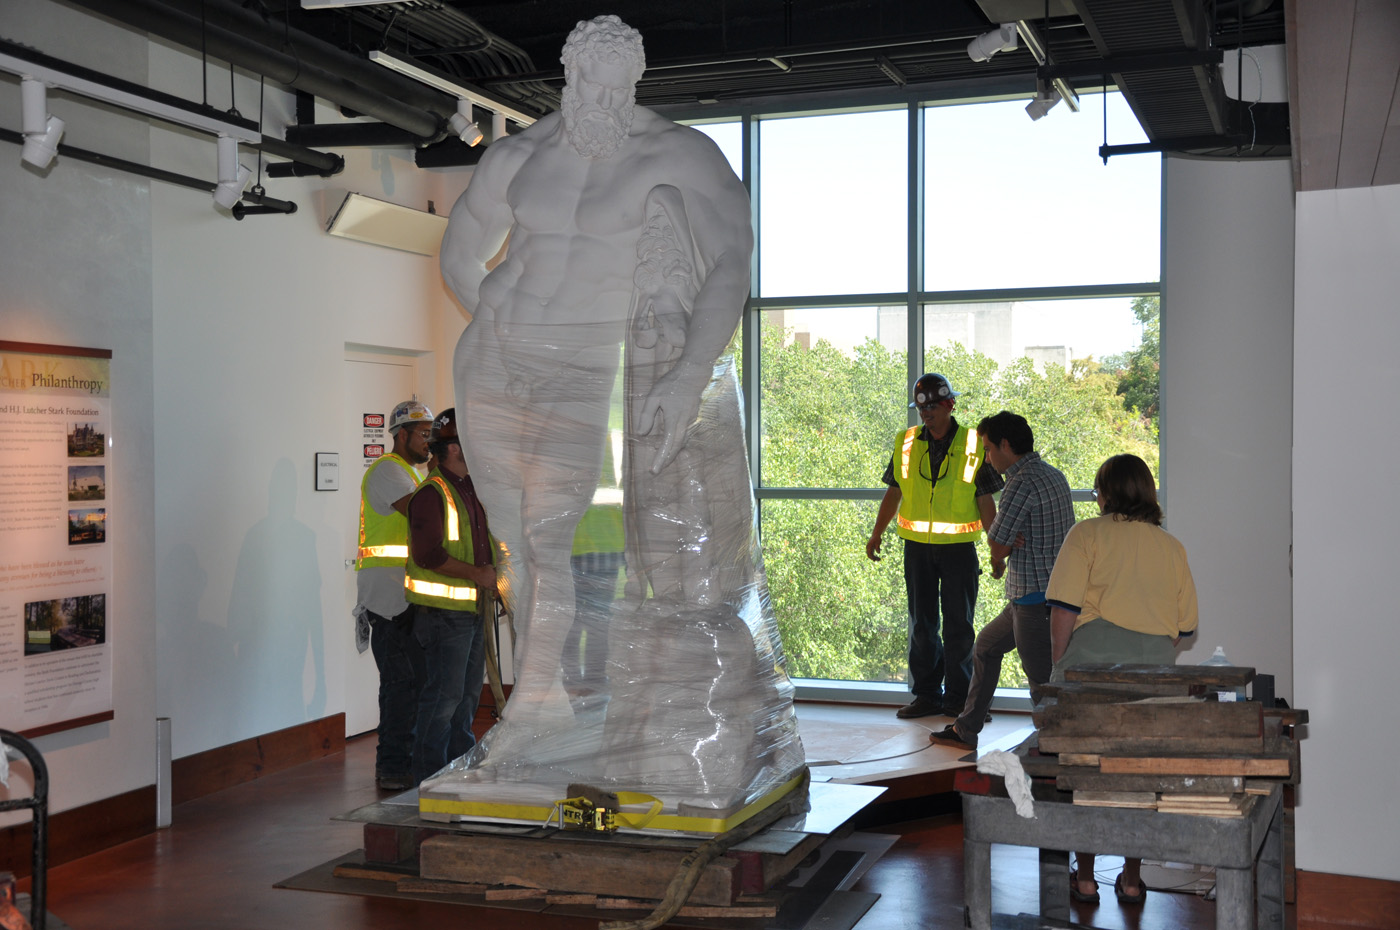 Front view of the statue of the Farnese Hercules wrapped and being moved, while three men, Kyle Martin, and Kim Beckwith all work on it, in the main lobby.